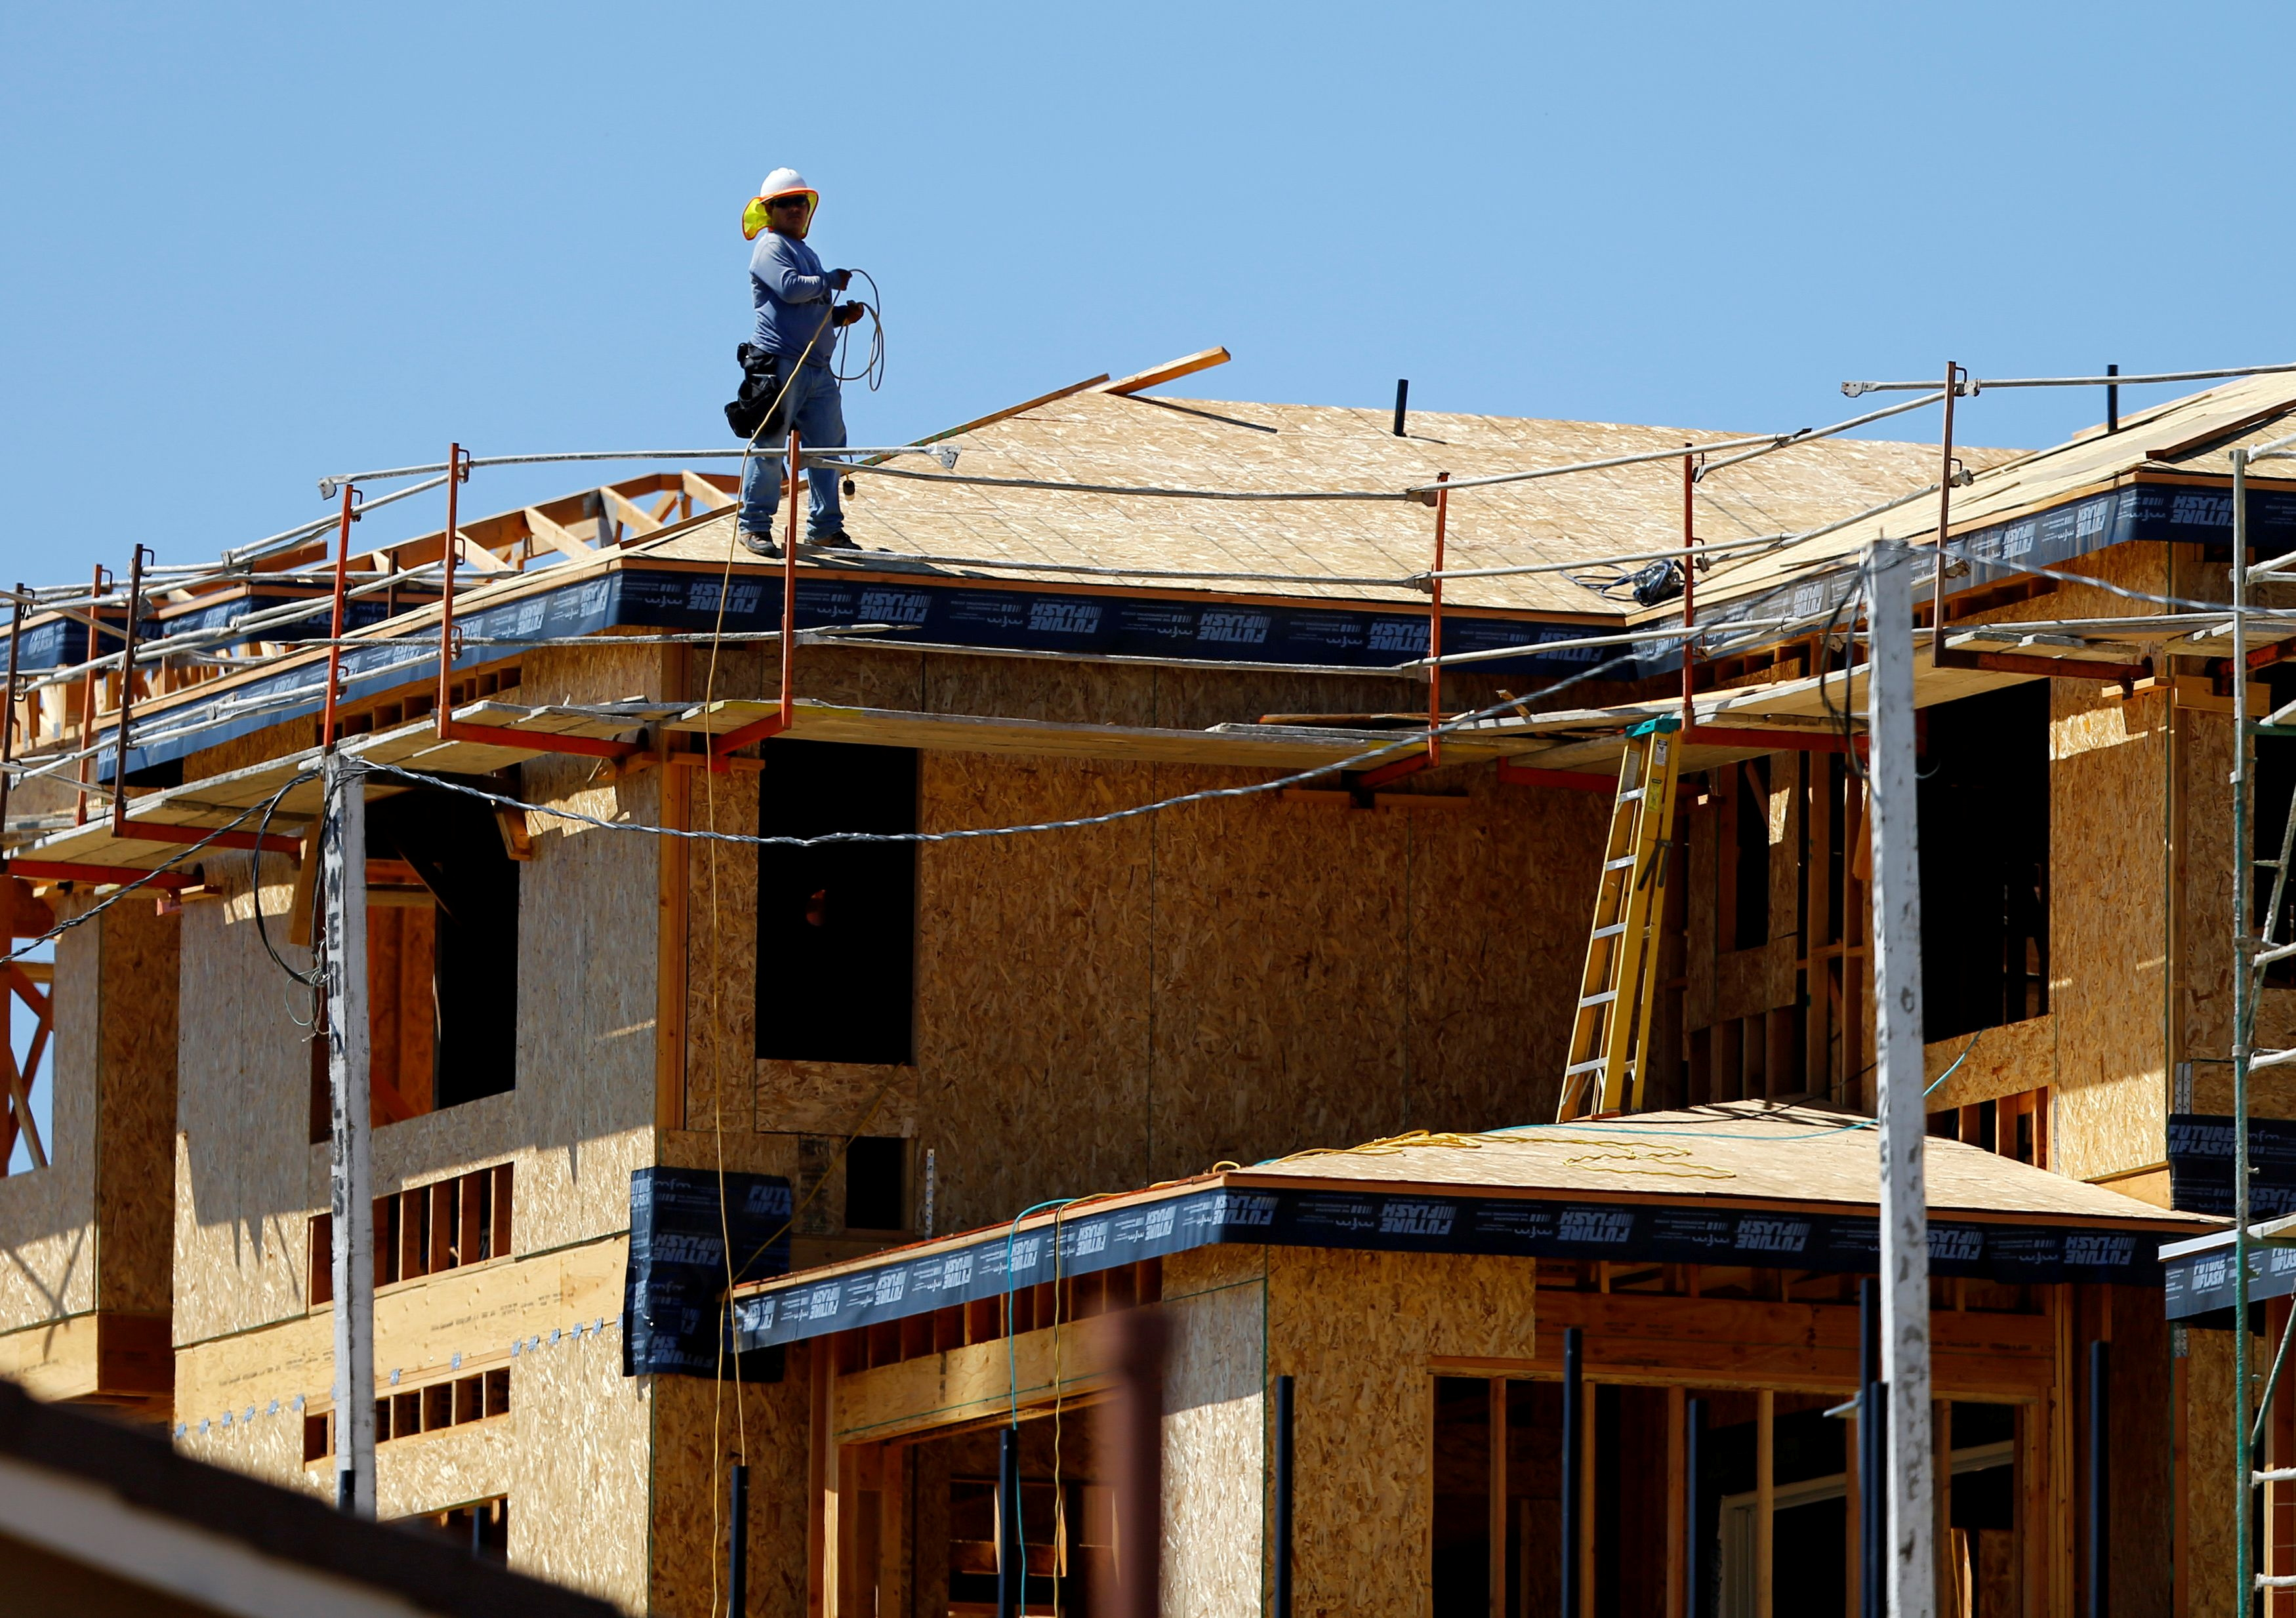 A worker walks on the roof of a new home under construction in Carlsbad, California September 22, 2014. REUTERS/Mike Blake/File Photo